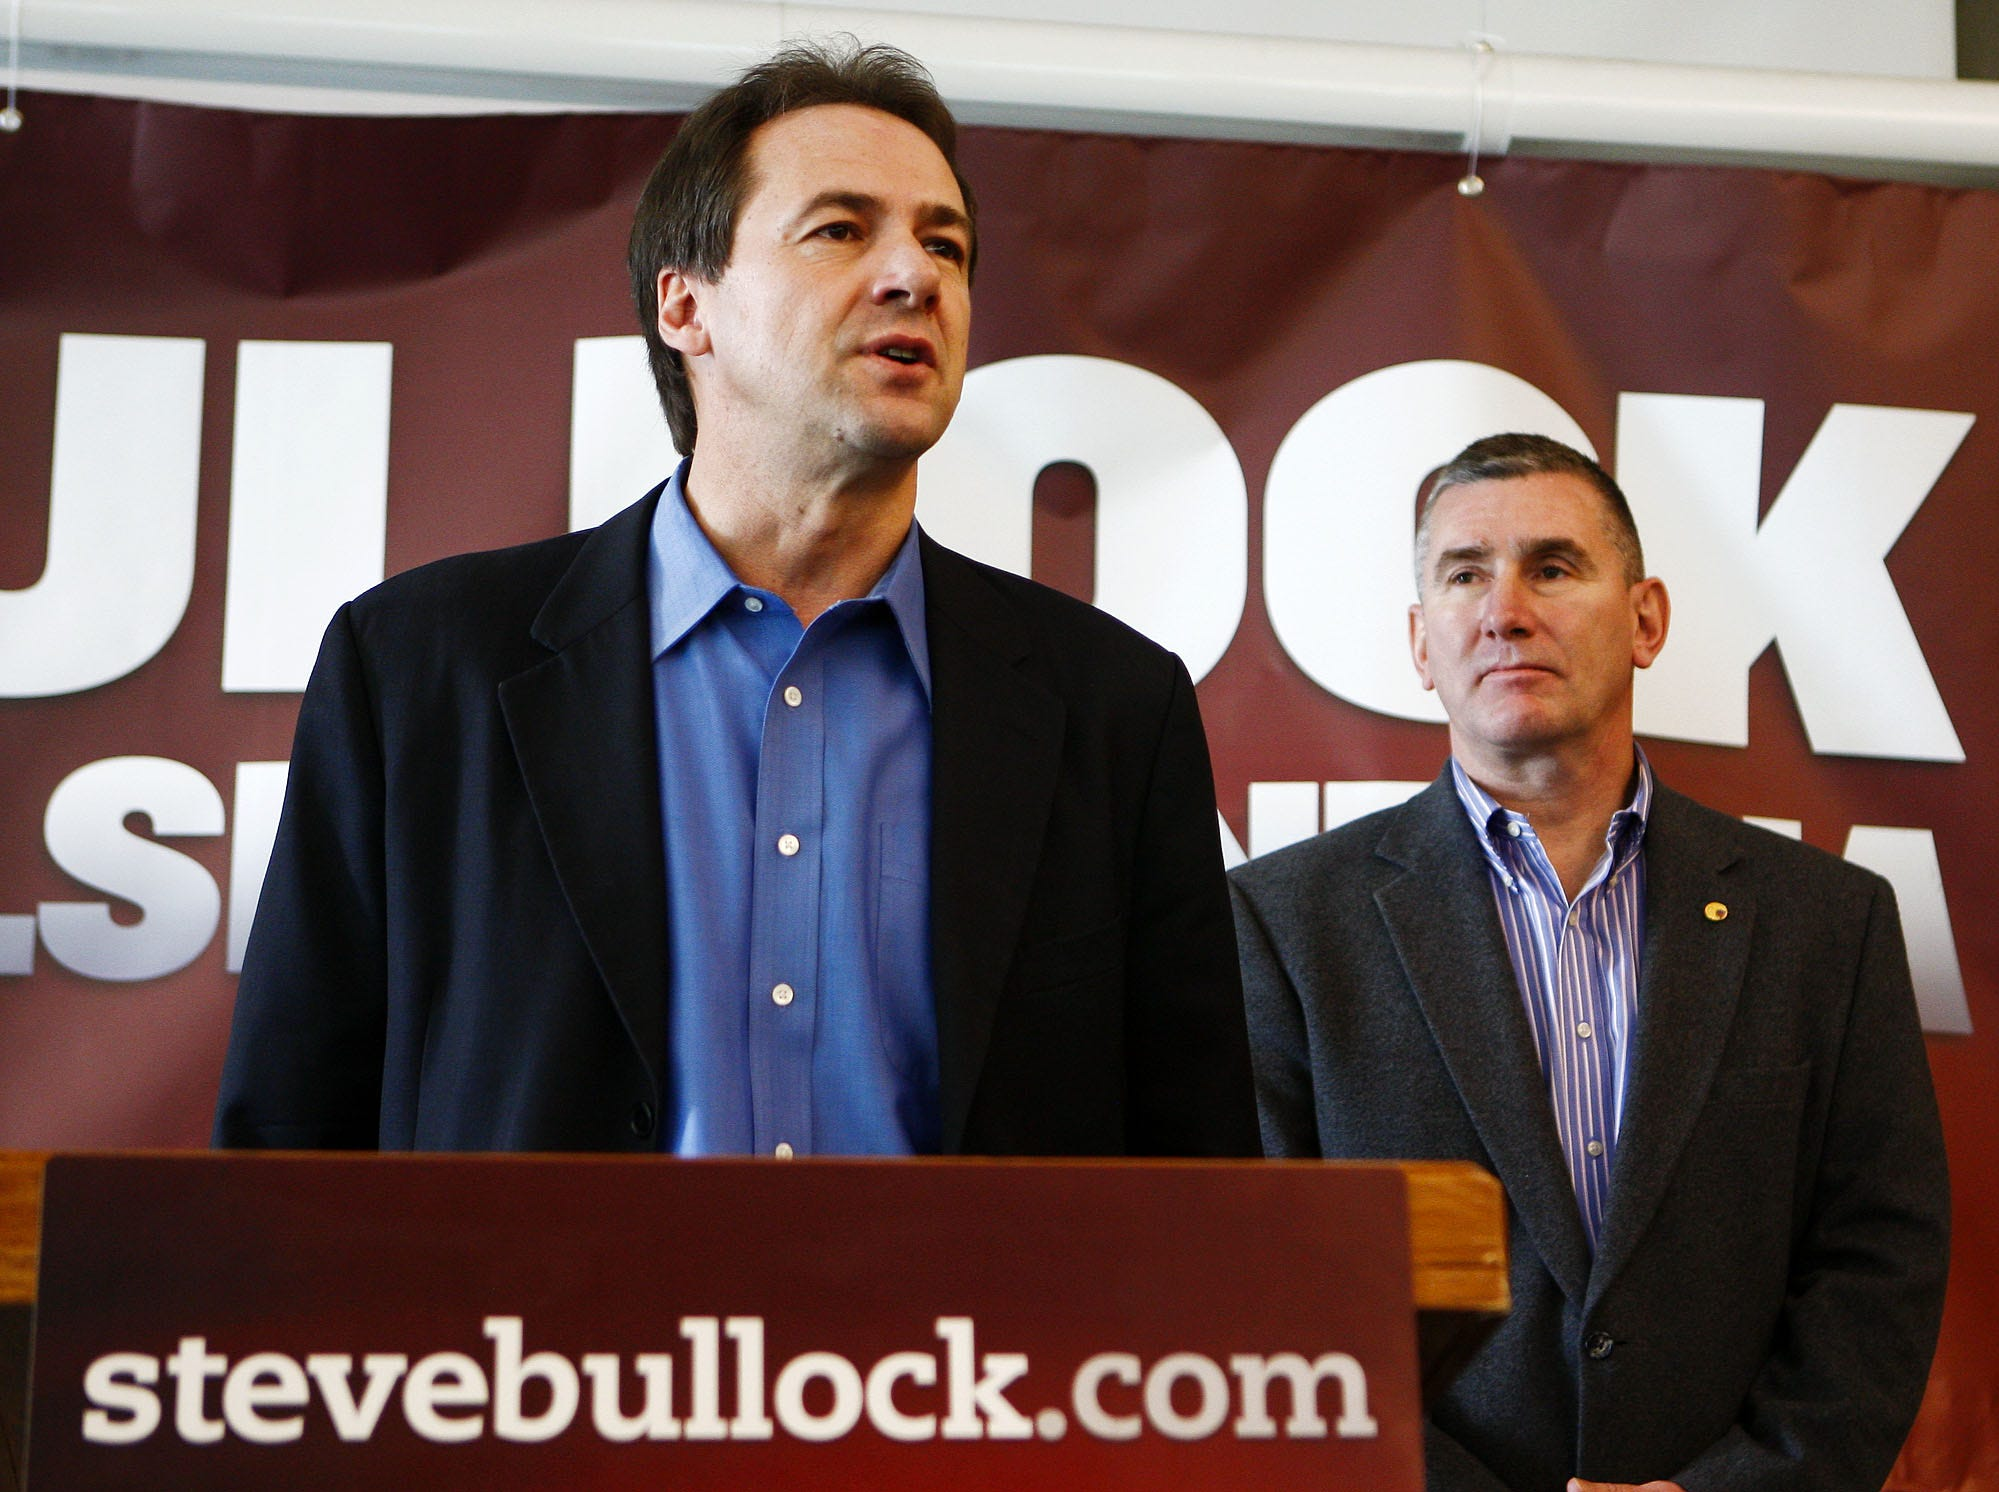 Steve Bullock, who is running for governor of Montana, left, announces his running mate, Brigadier General John Walsh (ret.) as lieutenant governor Thursday at the Great Falls International Airport. TRIBUNE PHOTO/LARRY BECKNER